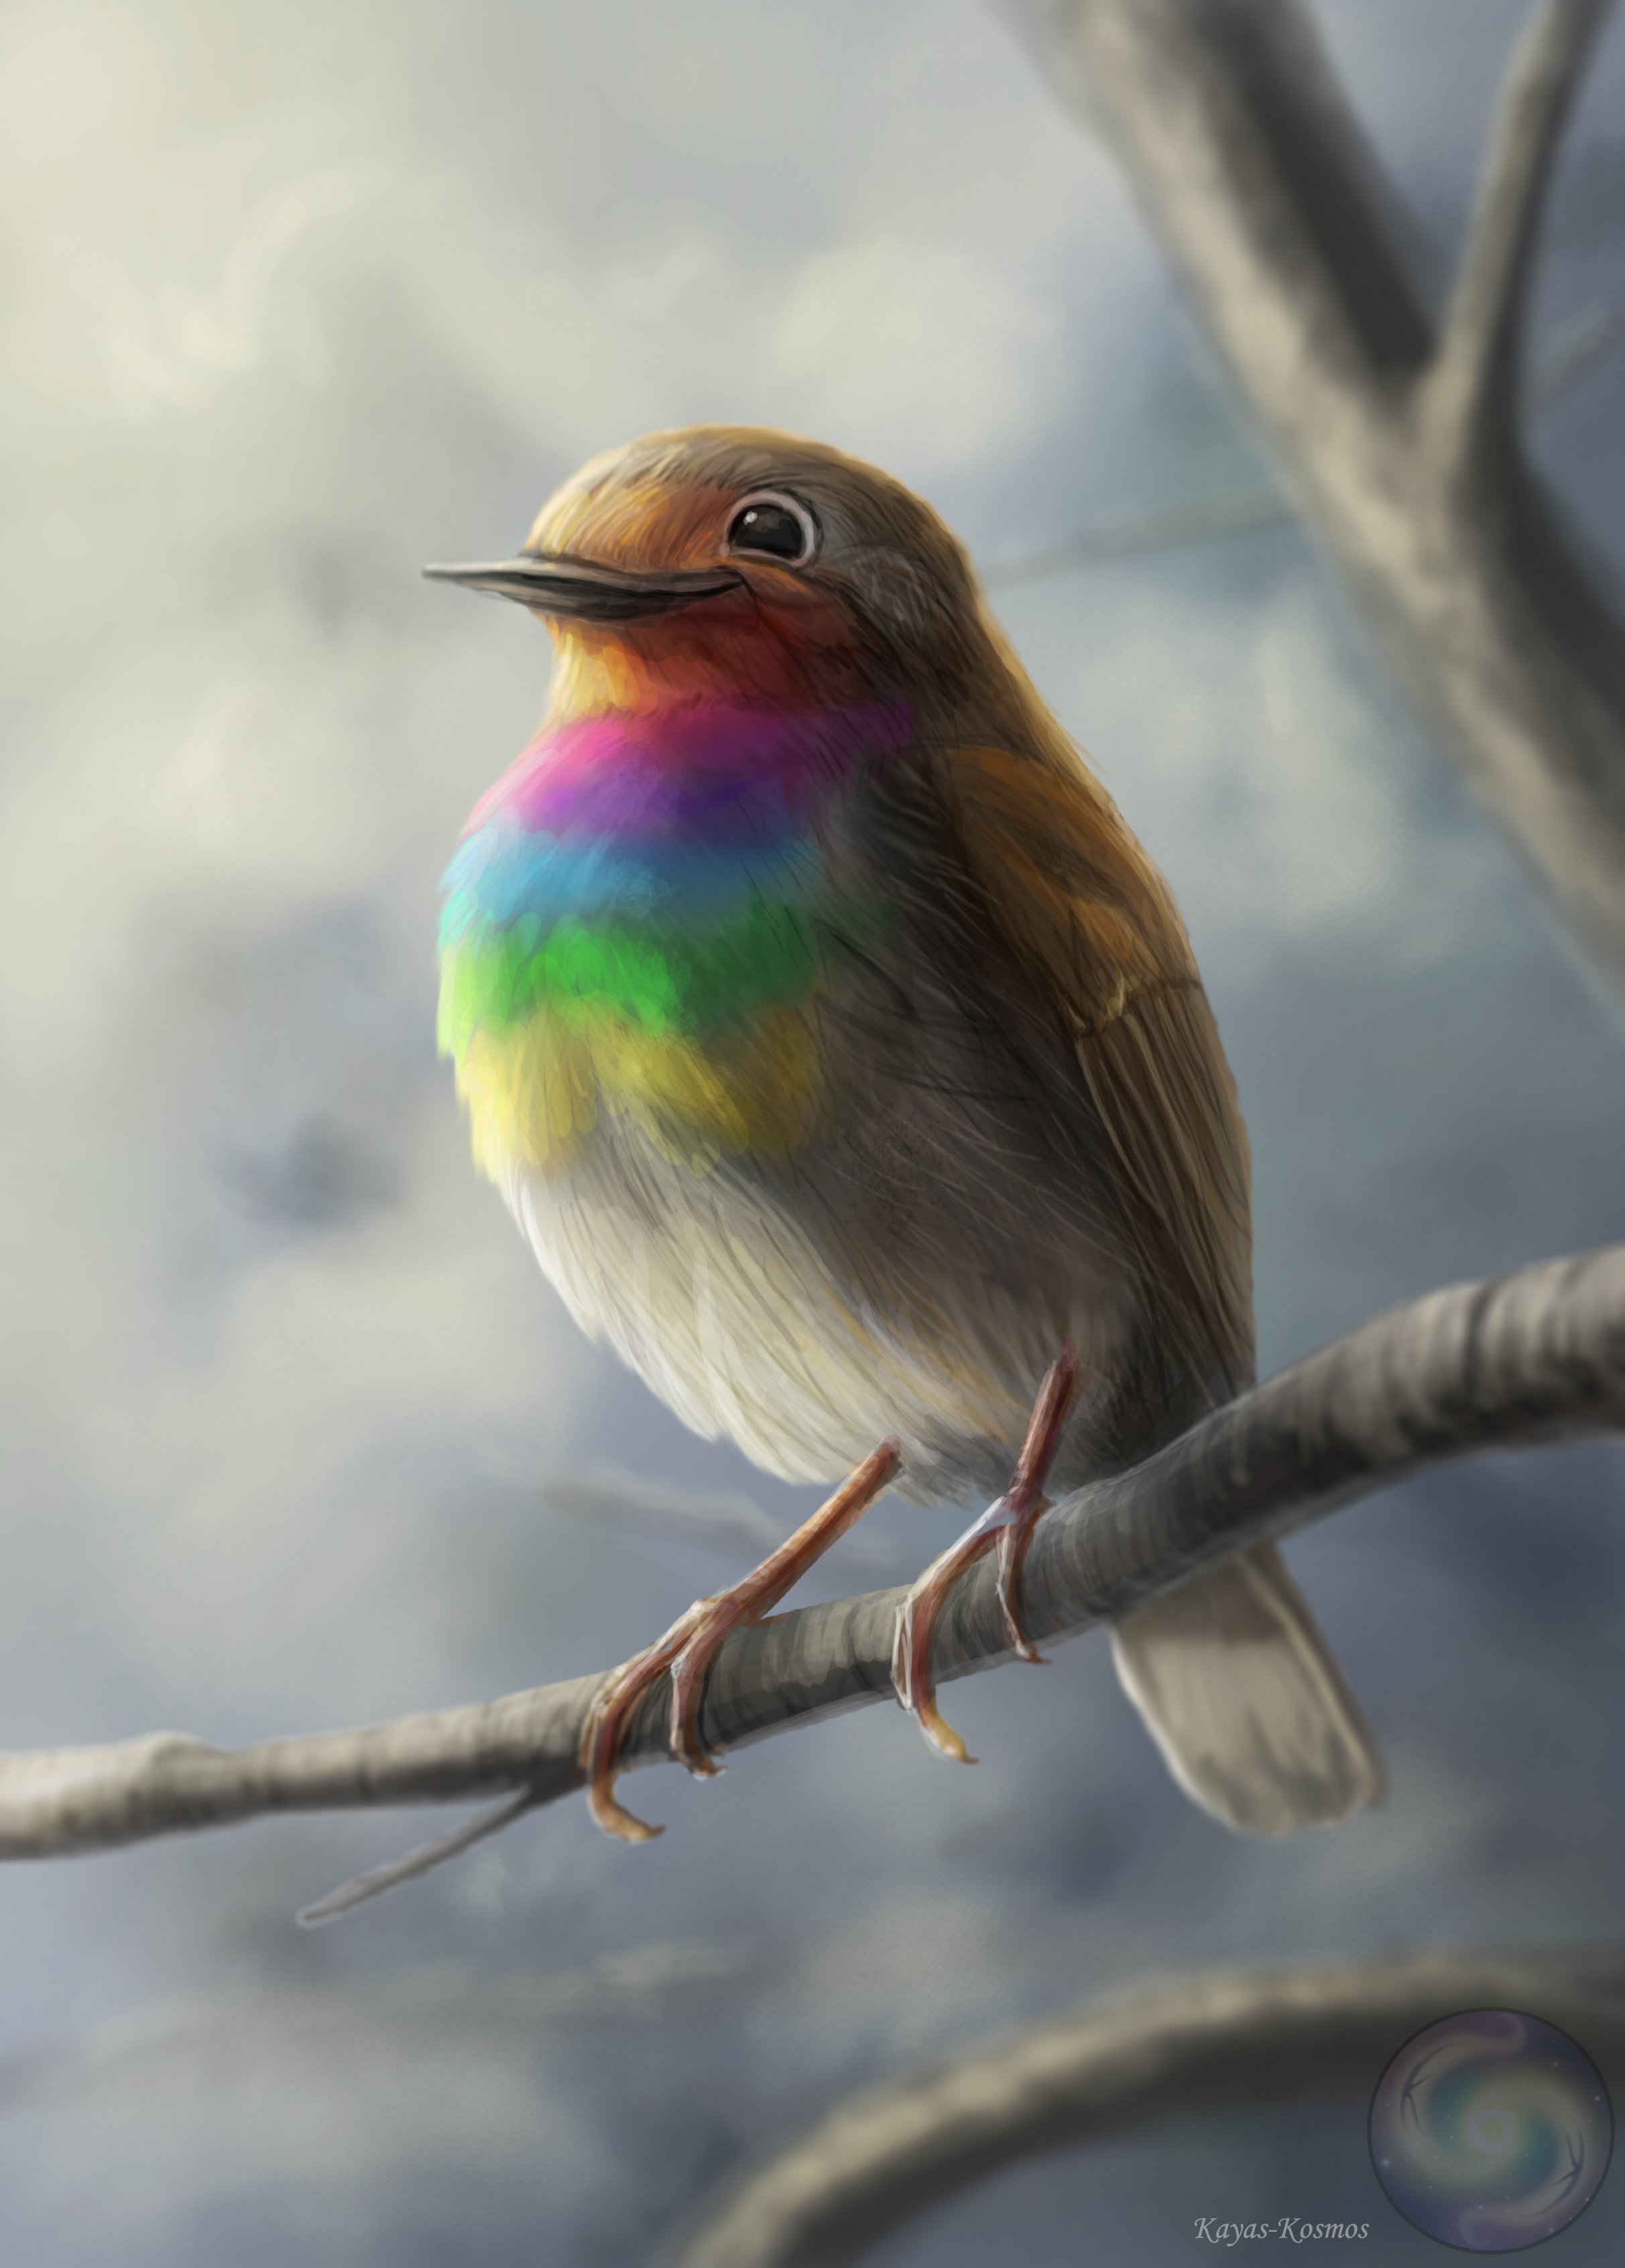 Robin rainbowbreast